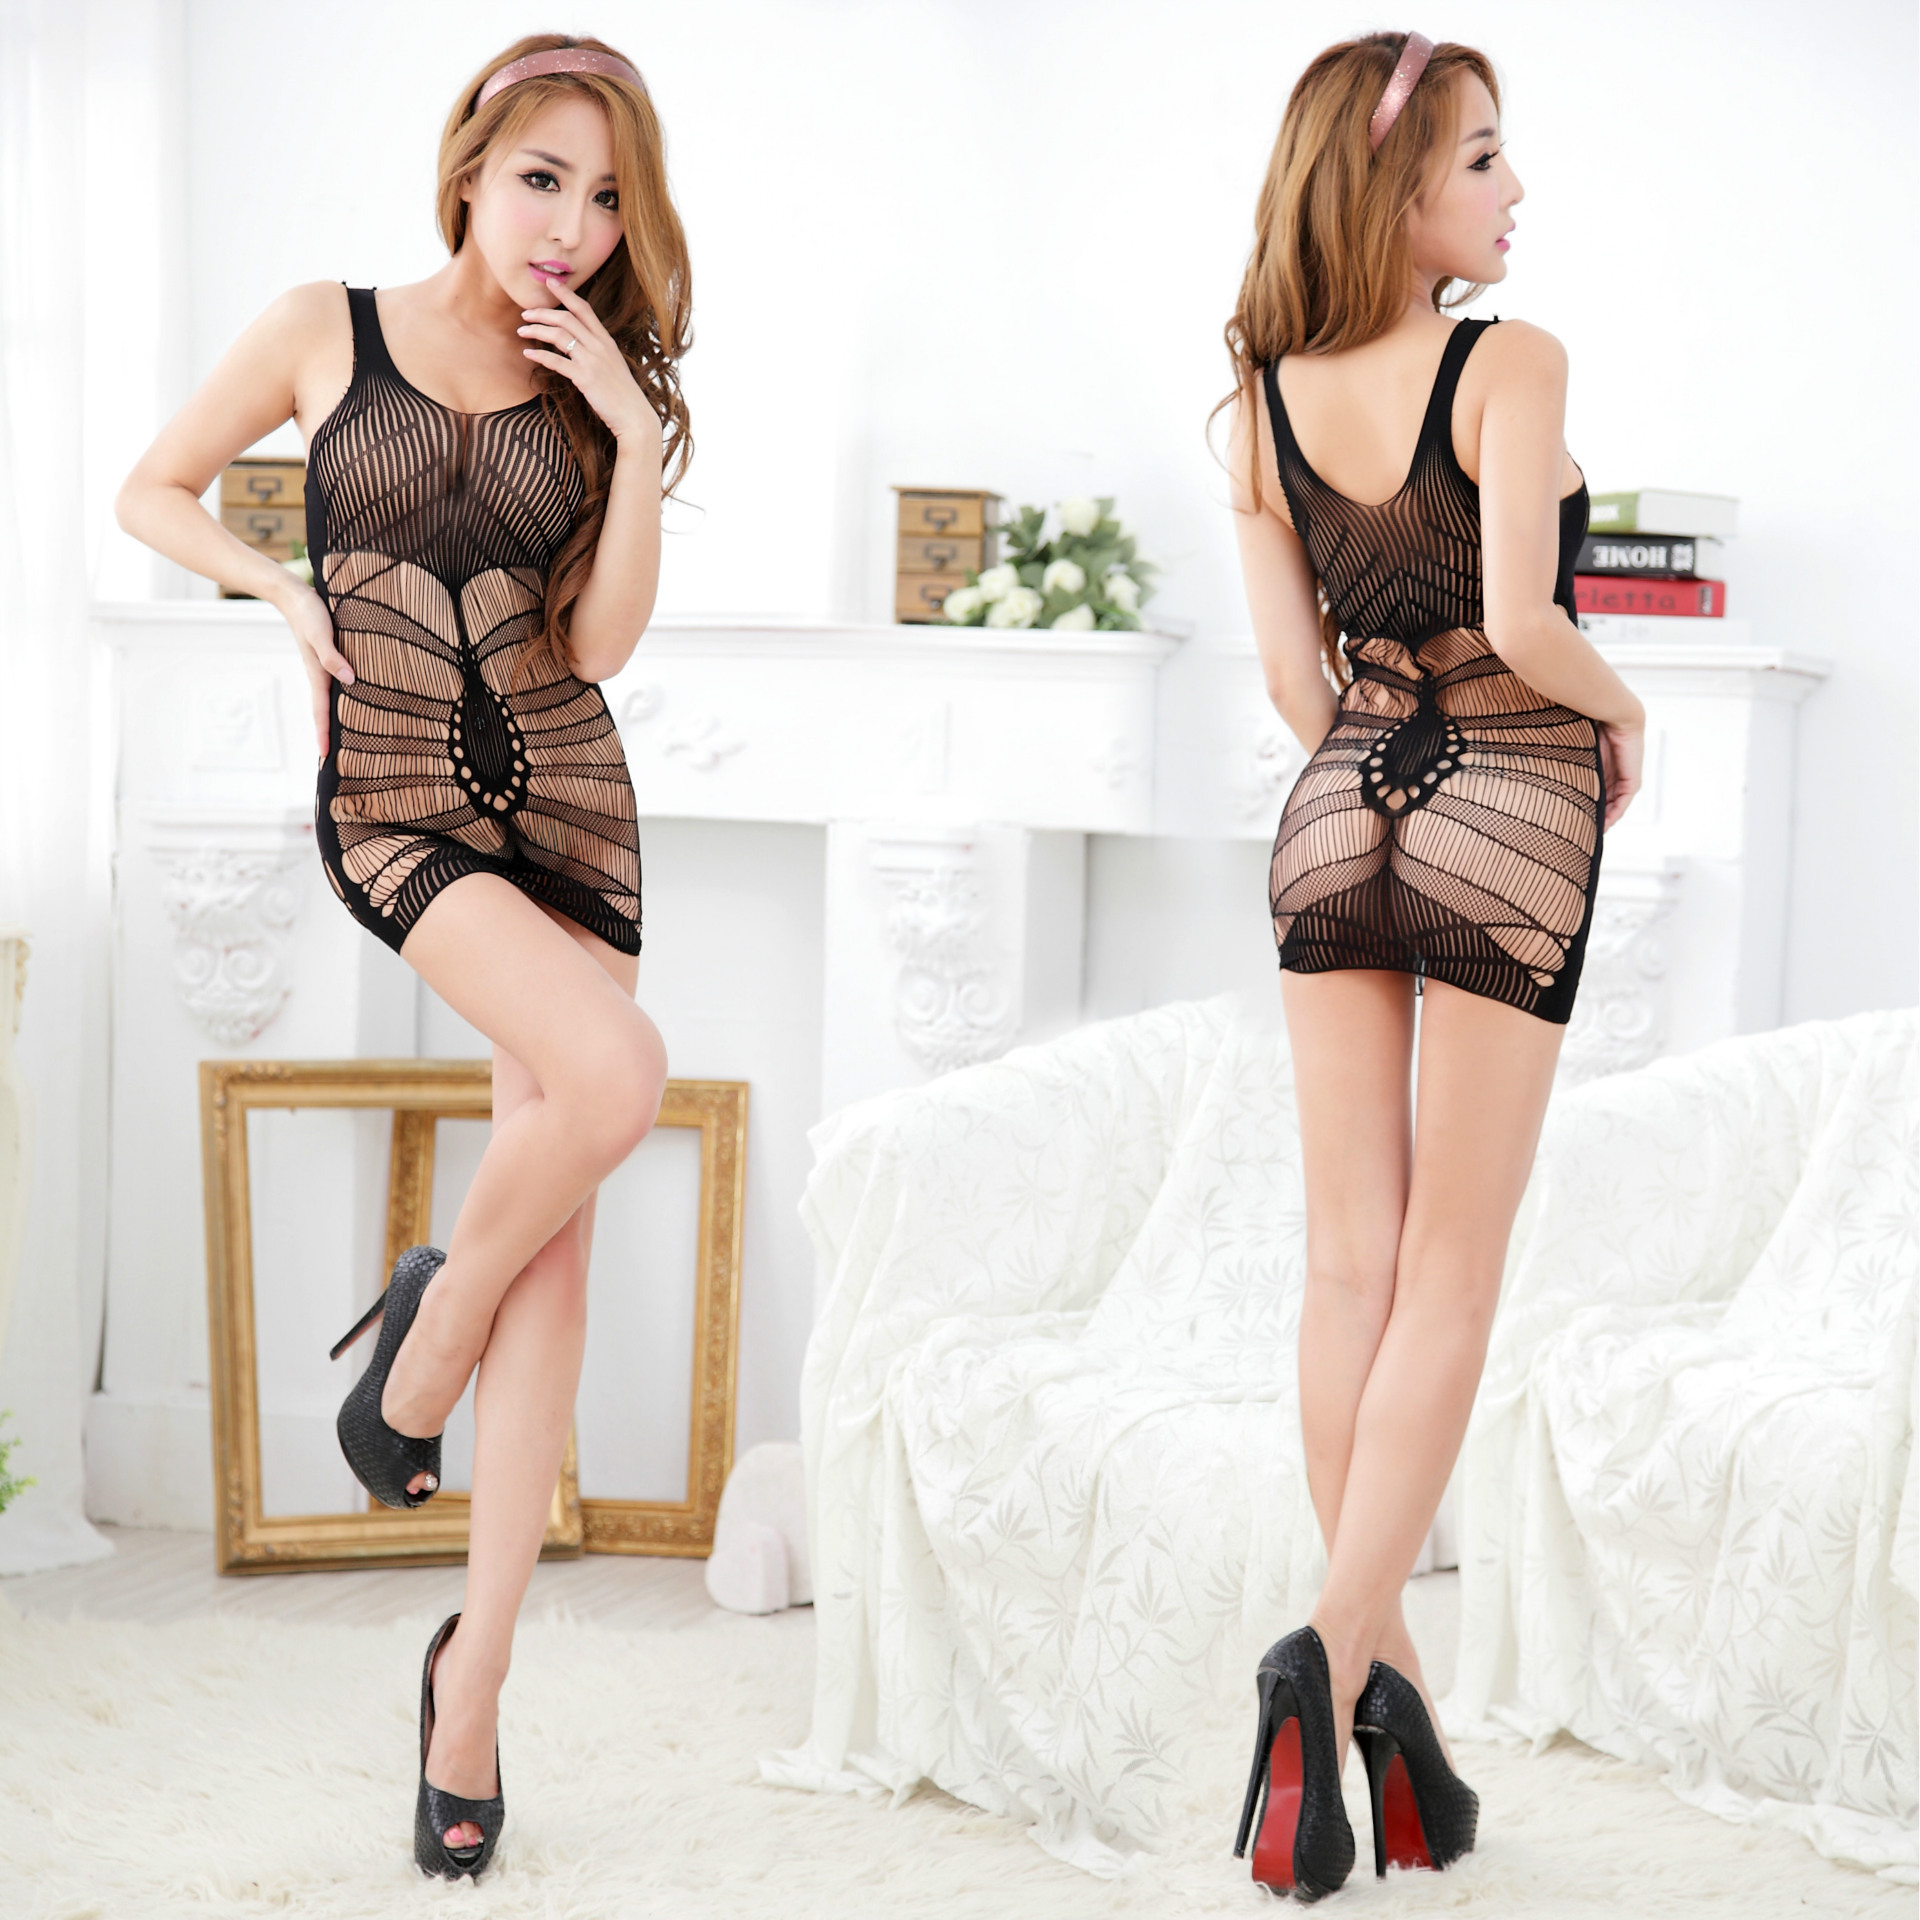 shop Hot Sexy black Bodysuit Babydoll Underwear Dress Set with crypto, pay with bitcoin